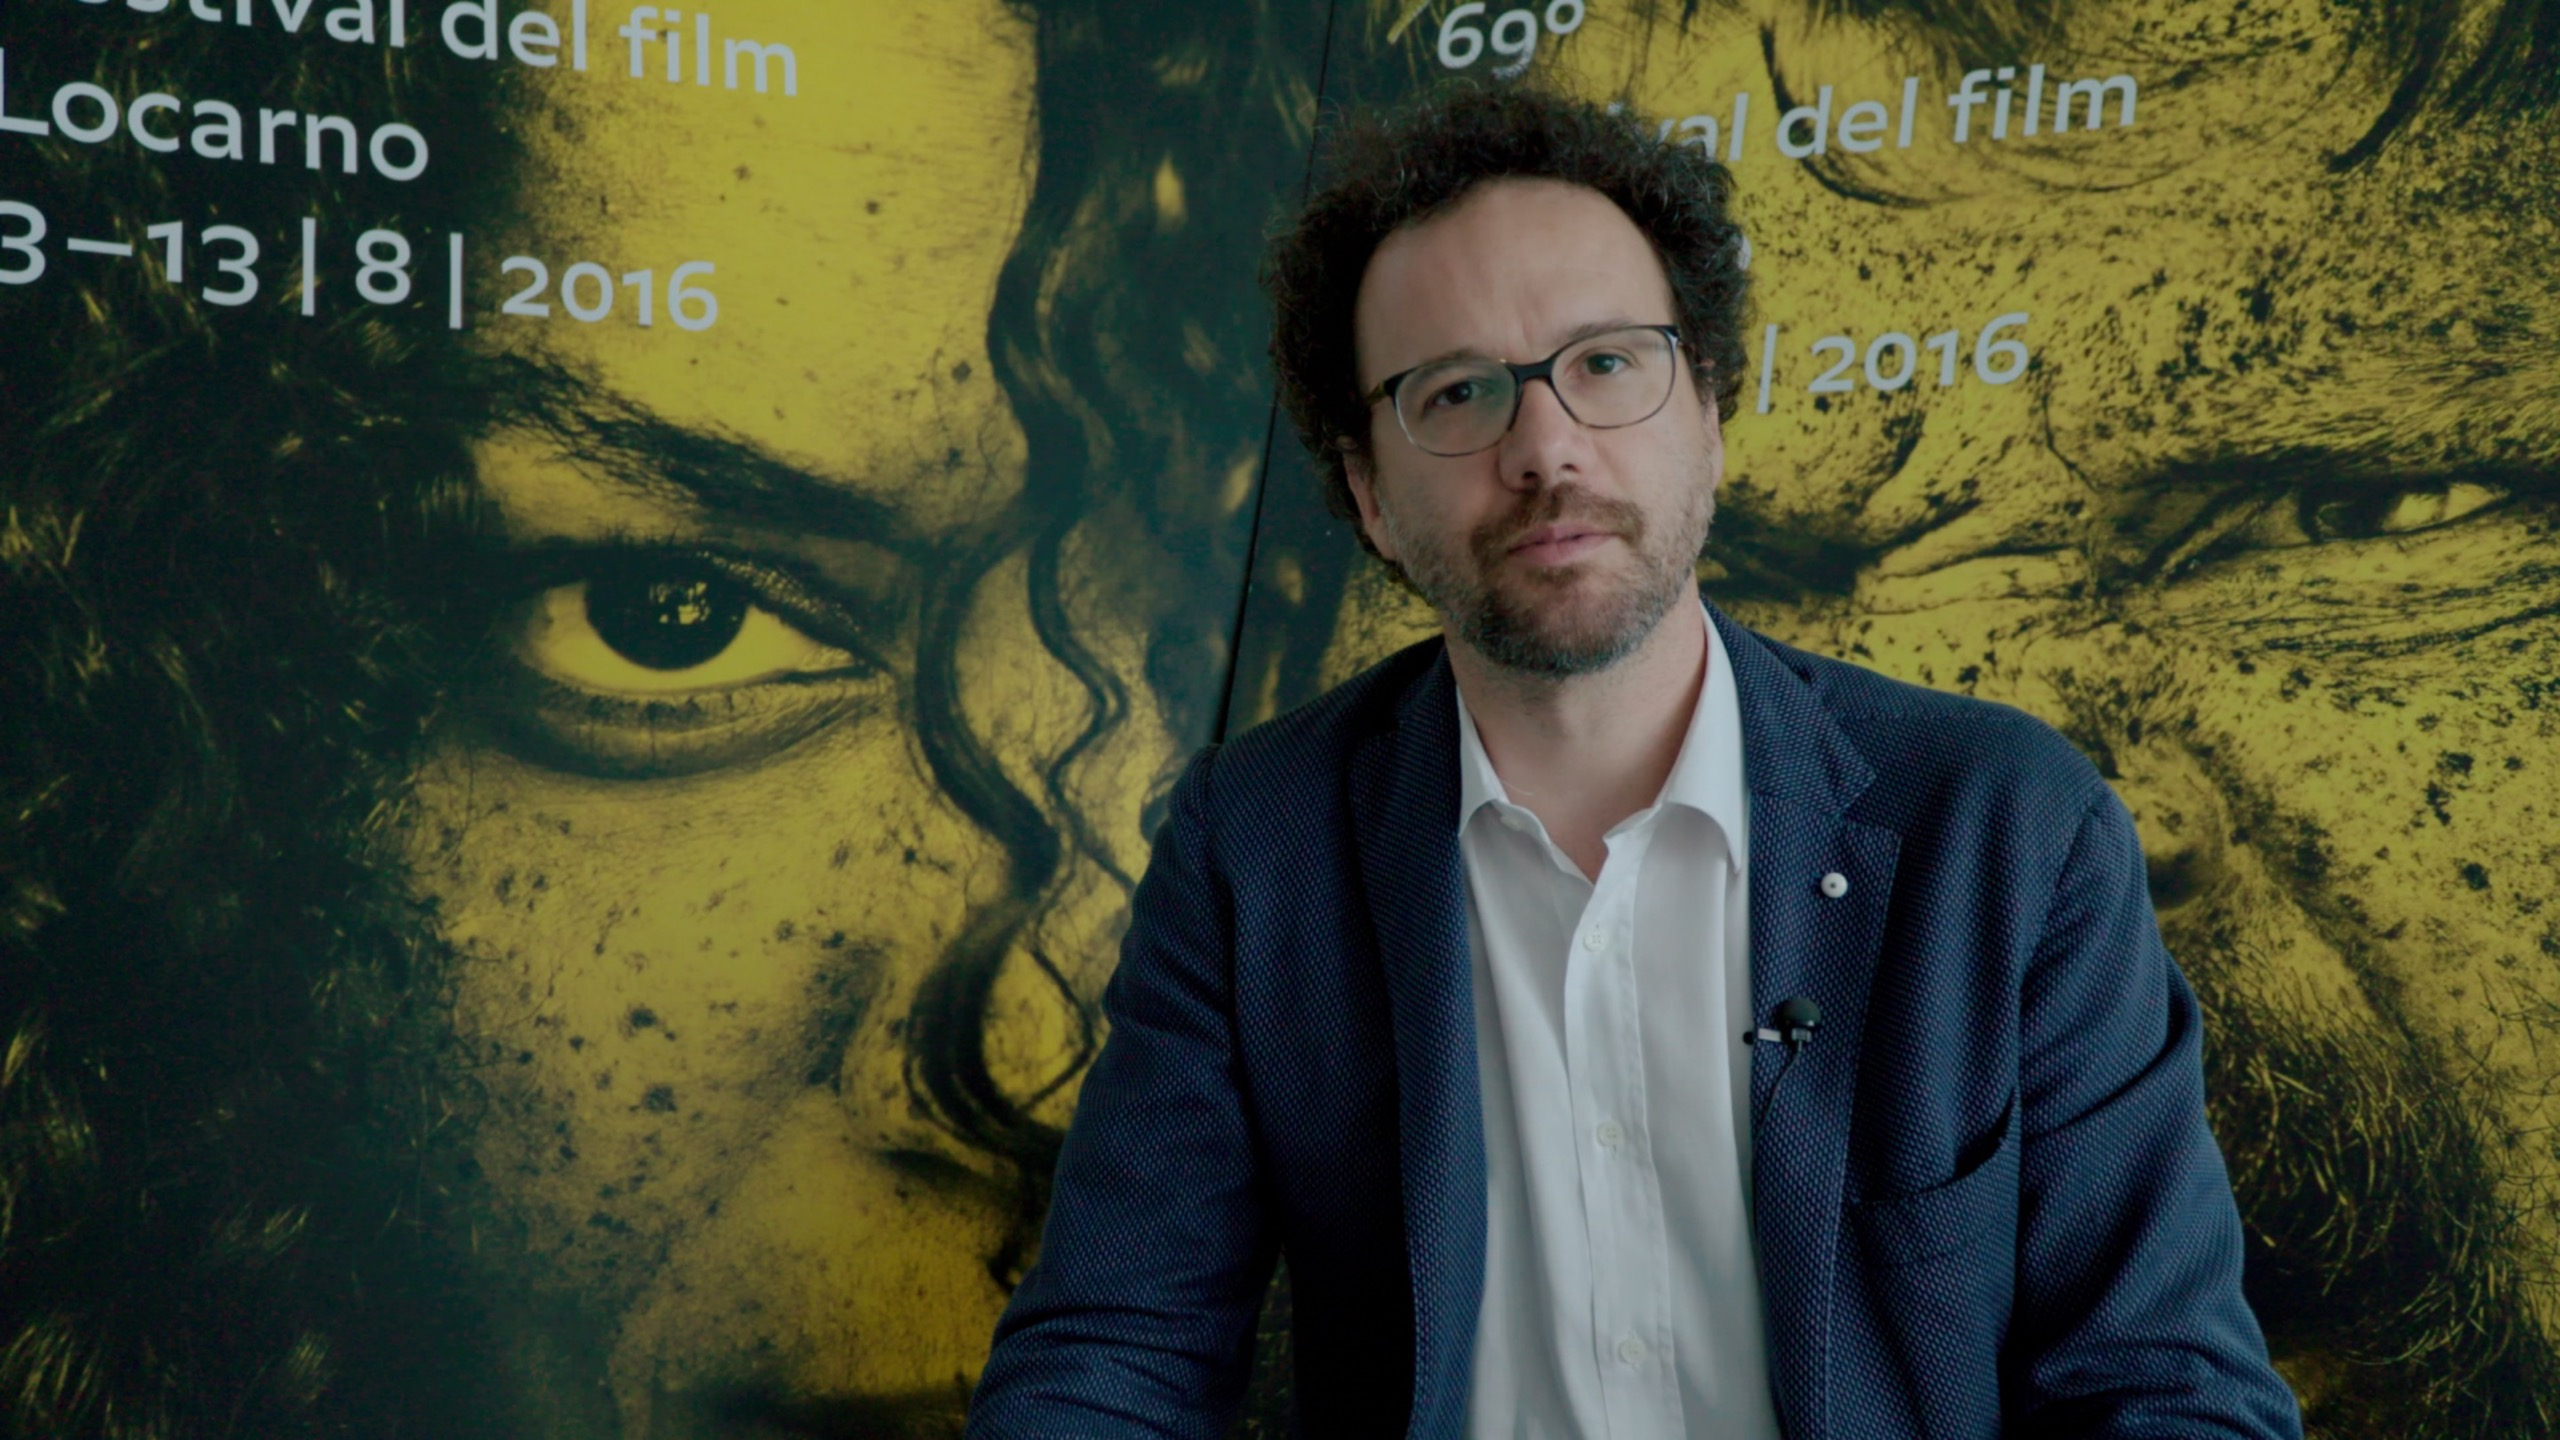 Story: Carlo Chatrian, <br>here's the Program of Locarno69